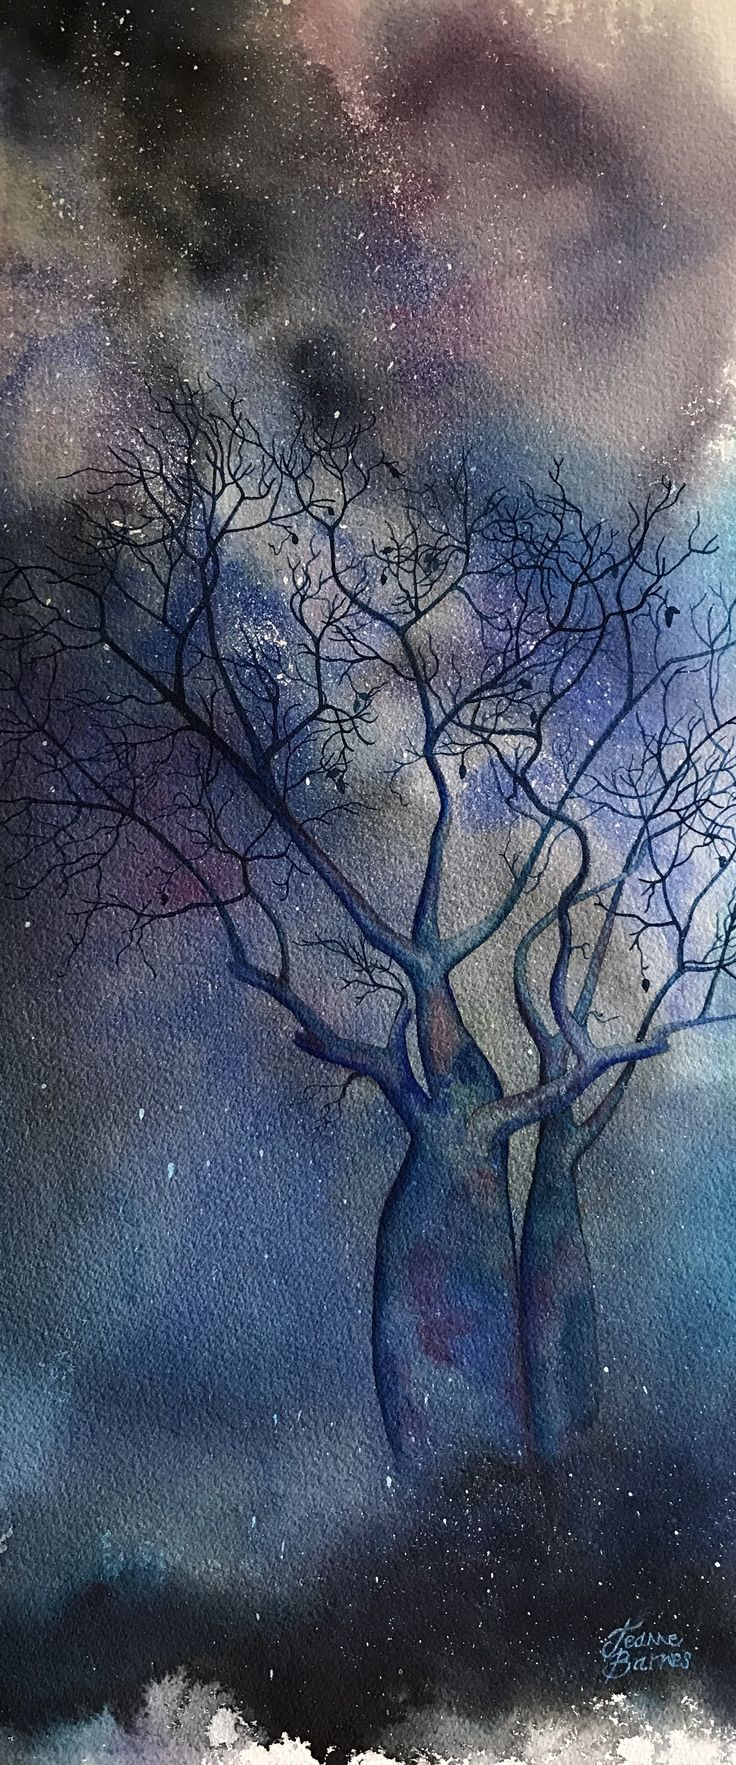 A Minute to Midnight by Jeanne Barnes. Watercolour on archival paper.